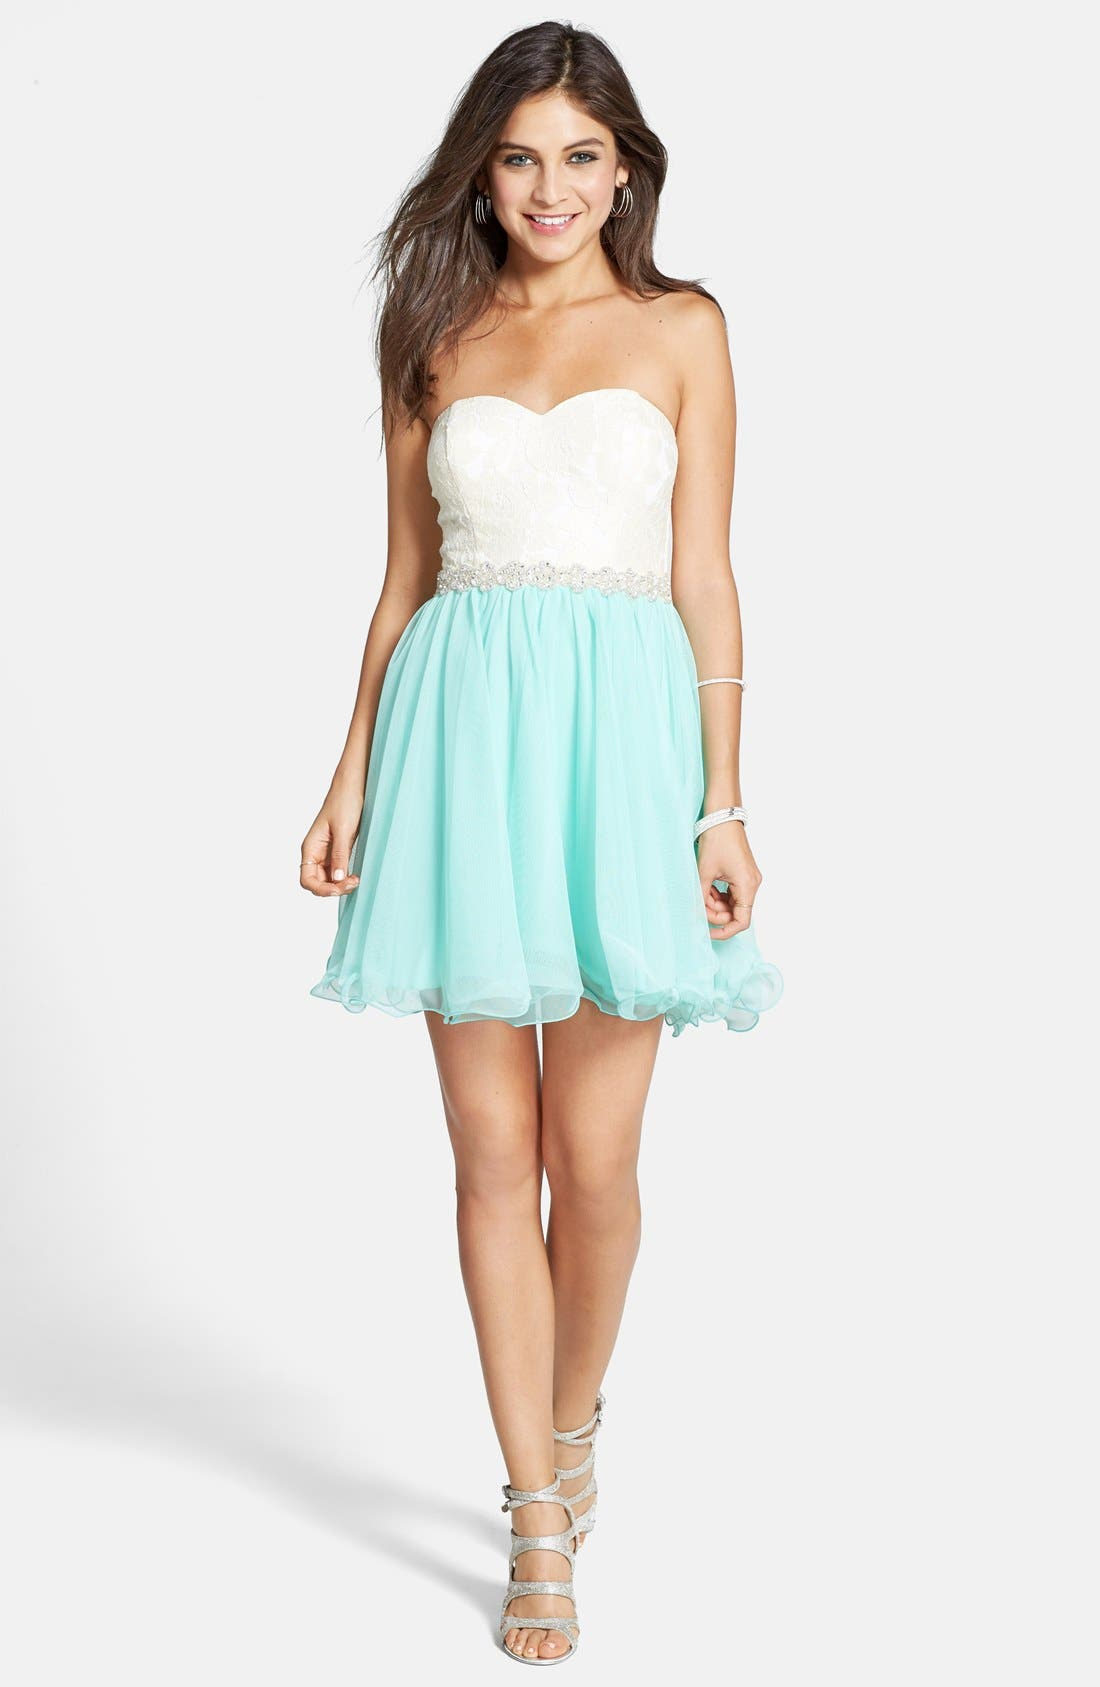 Alternate Image 1 Selected - Way-In Strapless Lace Bodice Party Dress (Juniors)